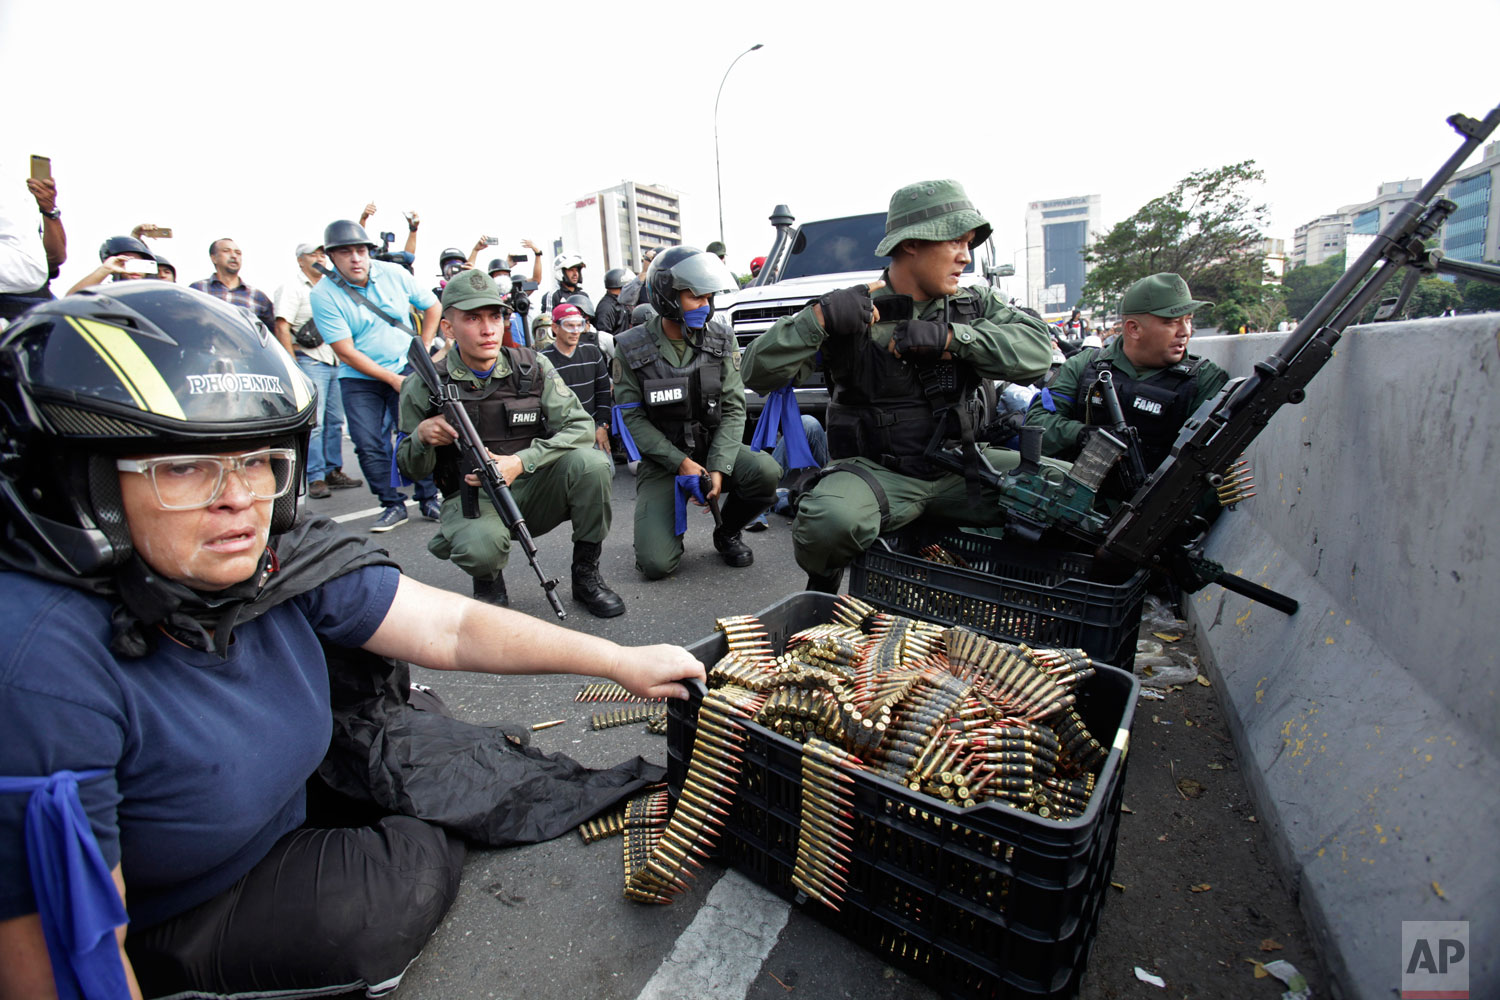 An anti-government protester sits by ammunition being used by rebel troops rising up against the government of Venezuela's President Nicolas Maduro as they all take cover on an overpass outside La Carlota military airbase where the rebel soldiers confront loyal troops inside the base in Caracas, Venezuela, Tuesday, April 30, 2019.   (AP Photo/Boris Vergara)